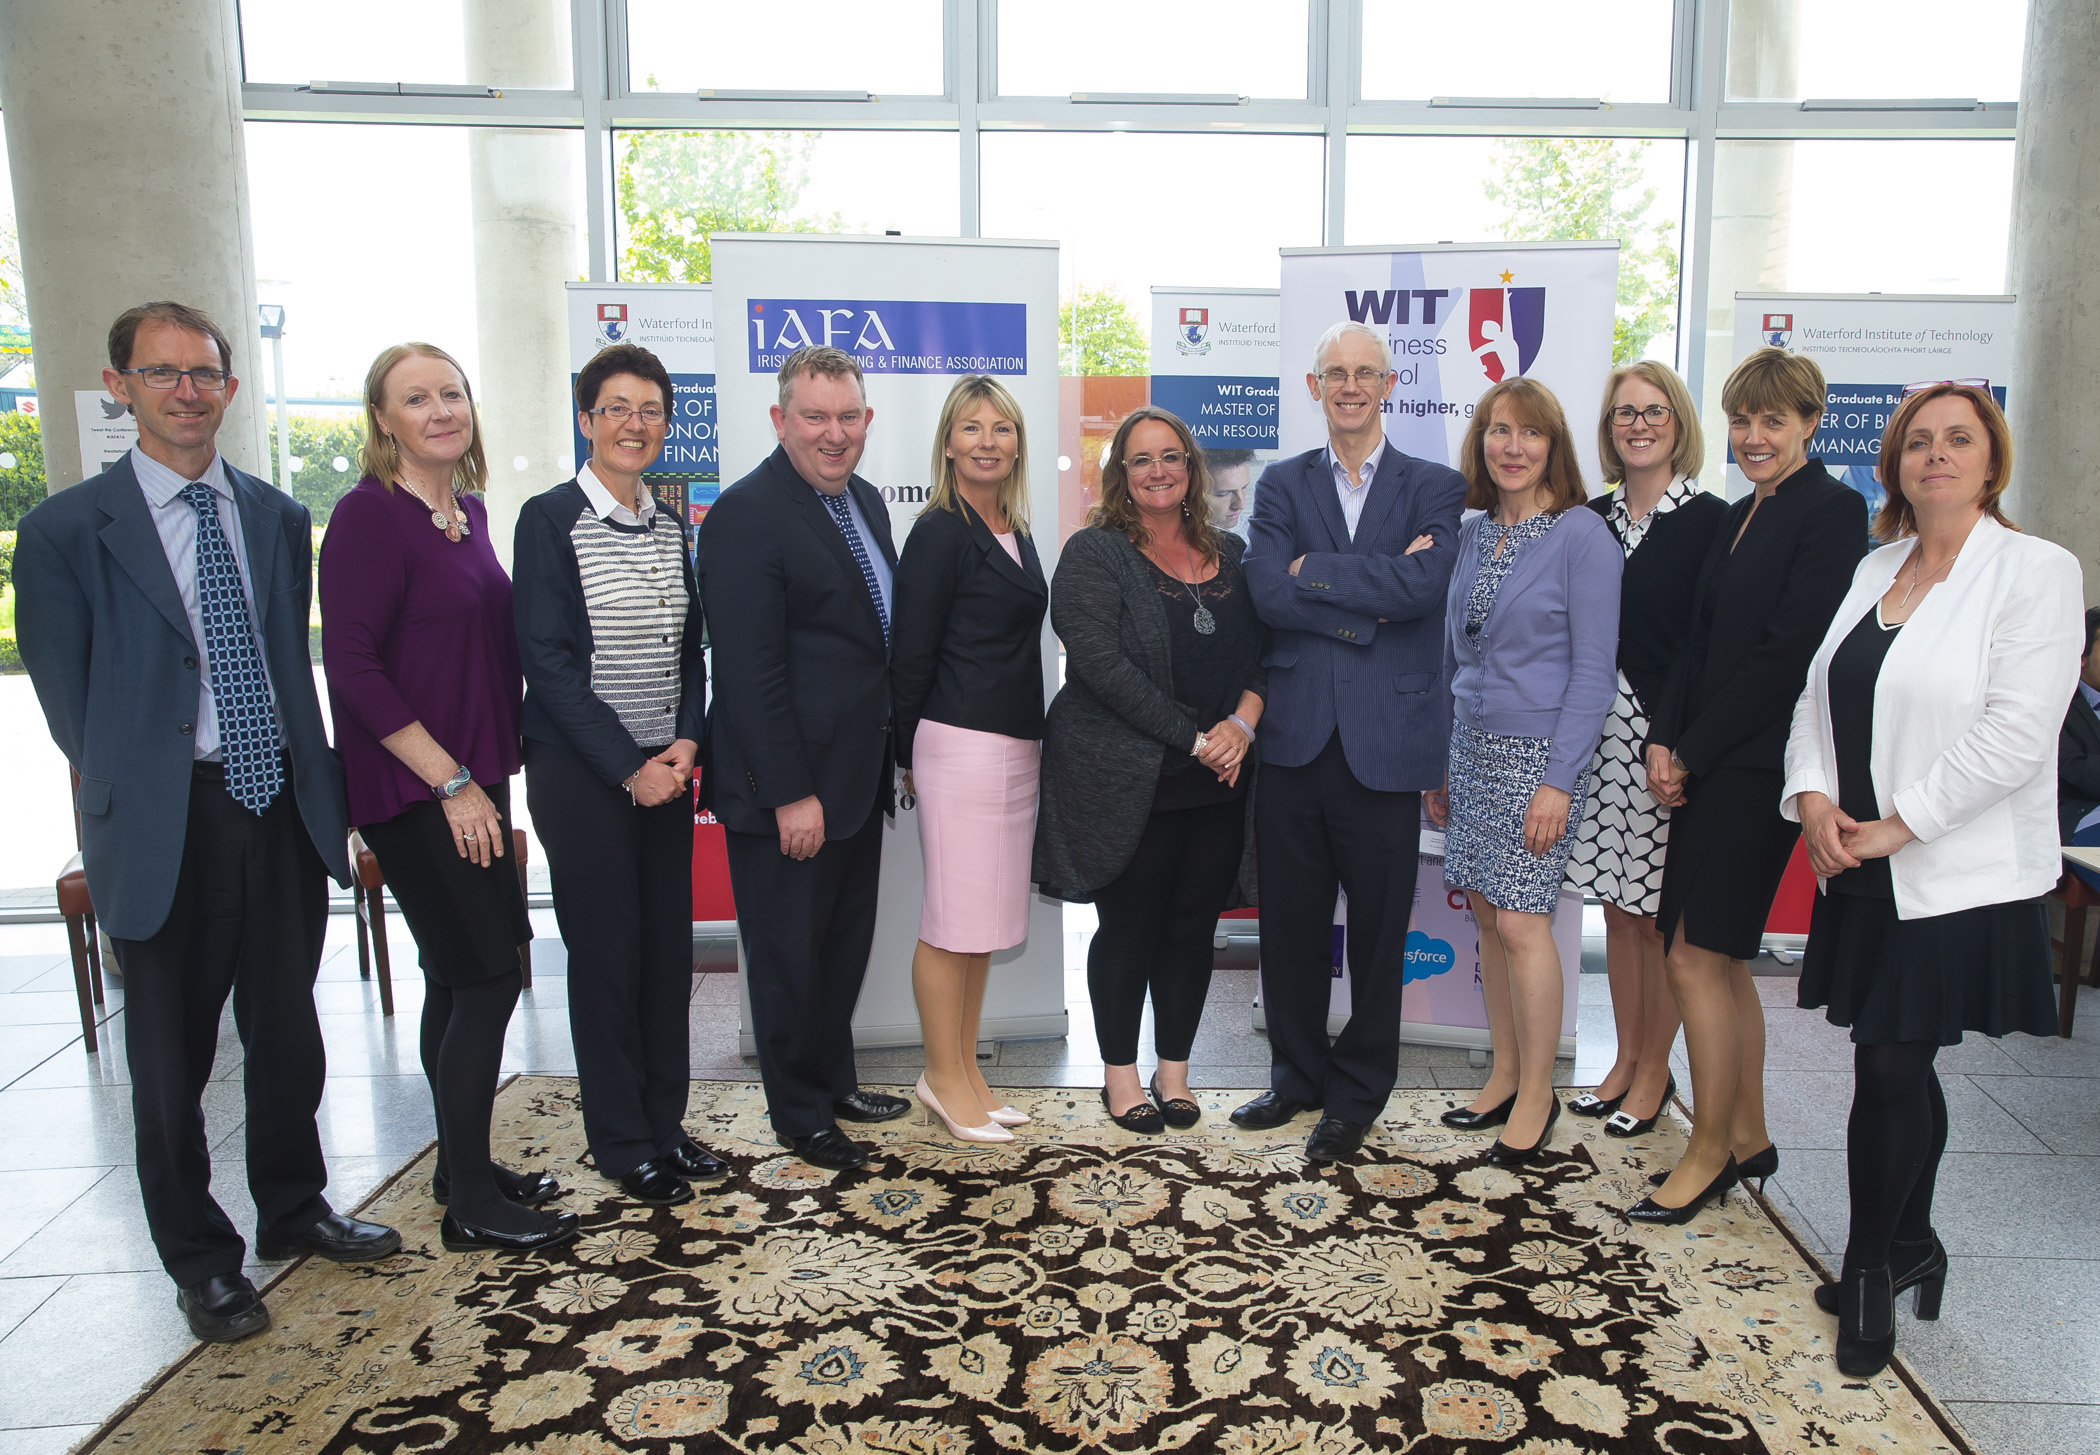 Irish Accounting & Finance Accociation Annual Conference at WIT (Waterford Institute of Technology). Pictured are Sean Byrne WIT, Ruth Mattimoe DCU, Sheila O'Donohoe WIT, Joseph Coughlan NUI Maynooth, Geraldine Doyle UCD, Professor Jill Atkins, Ray Donnelly UCC, Rosmarie Kelly WIT, Elaine Doyle University of Limerick, Joan Ballantine Ulster University and Clare Kearney WIT . Picture: Patrick Brown